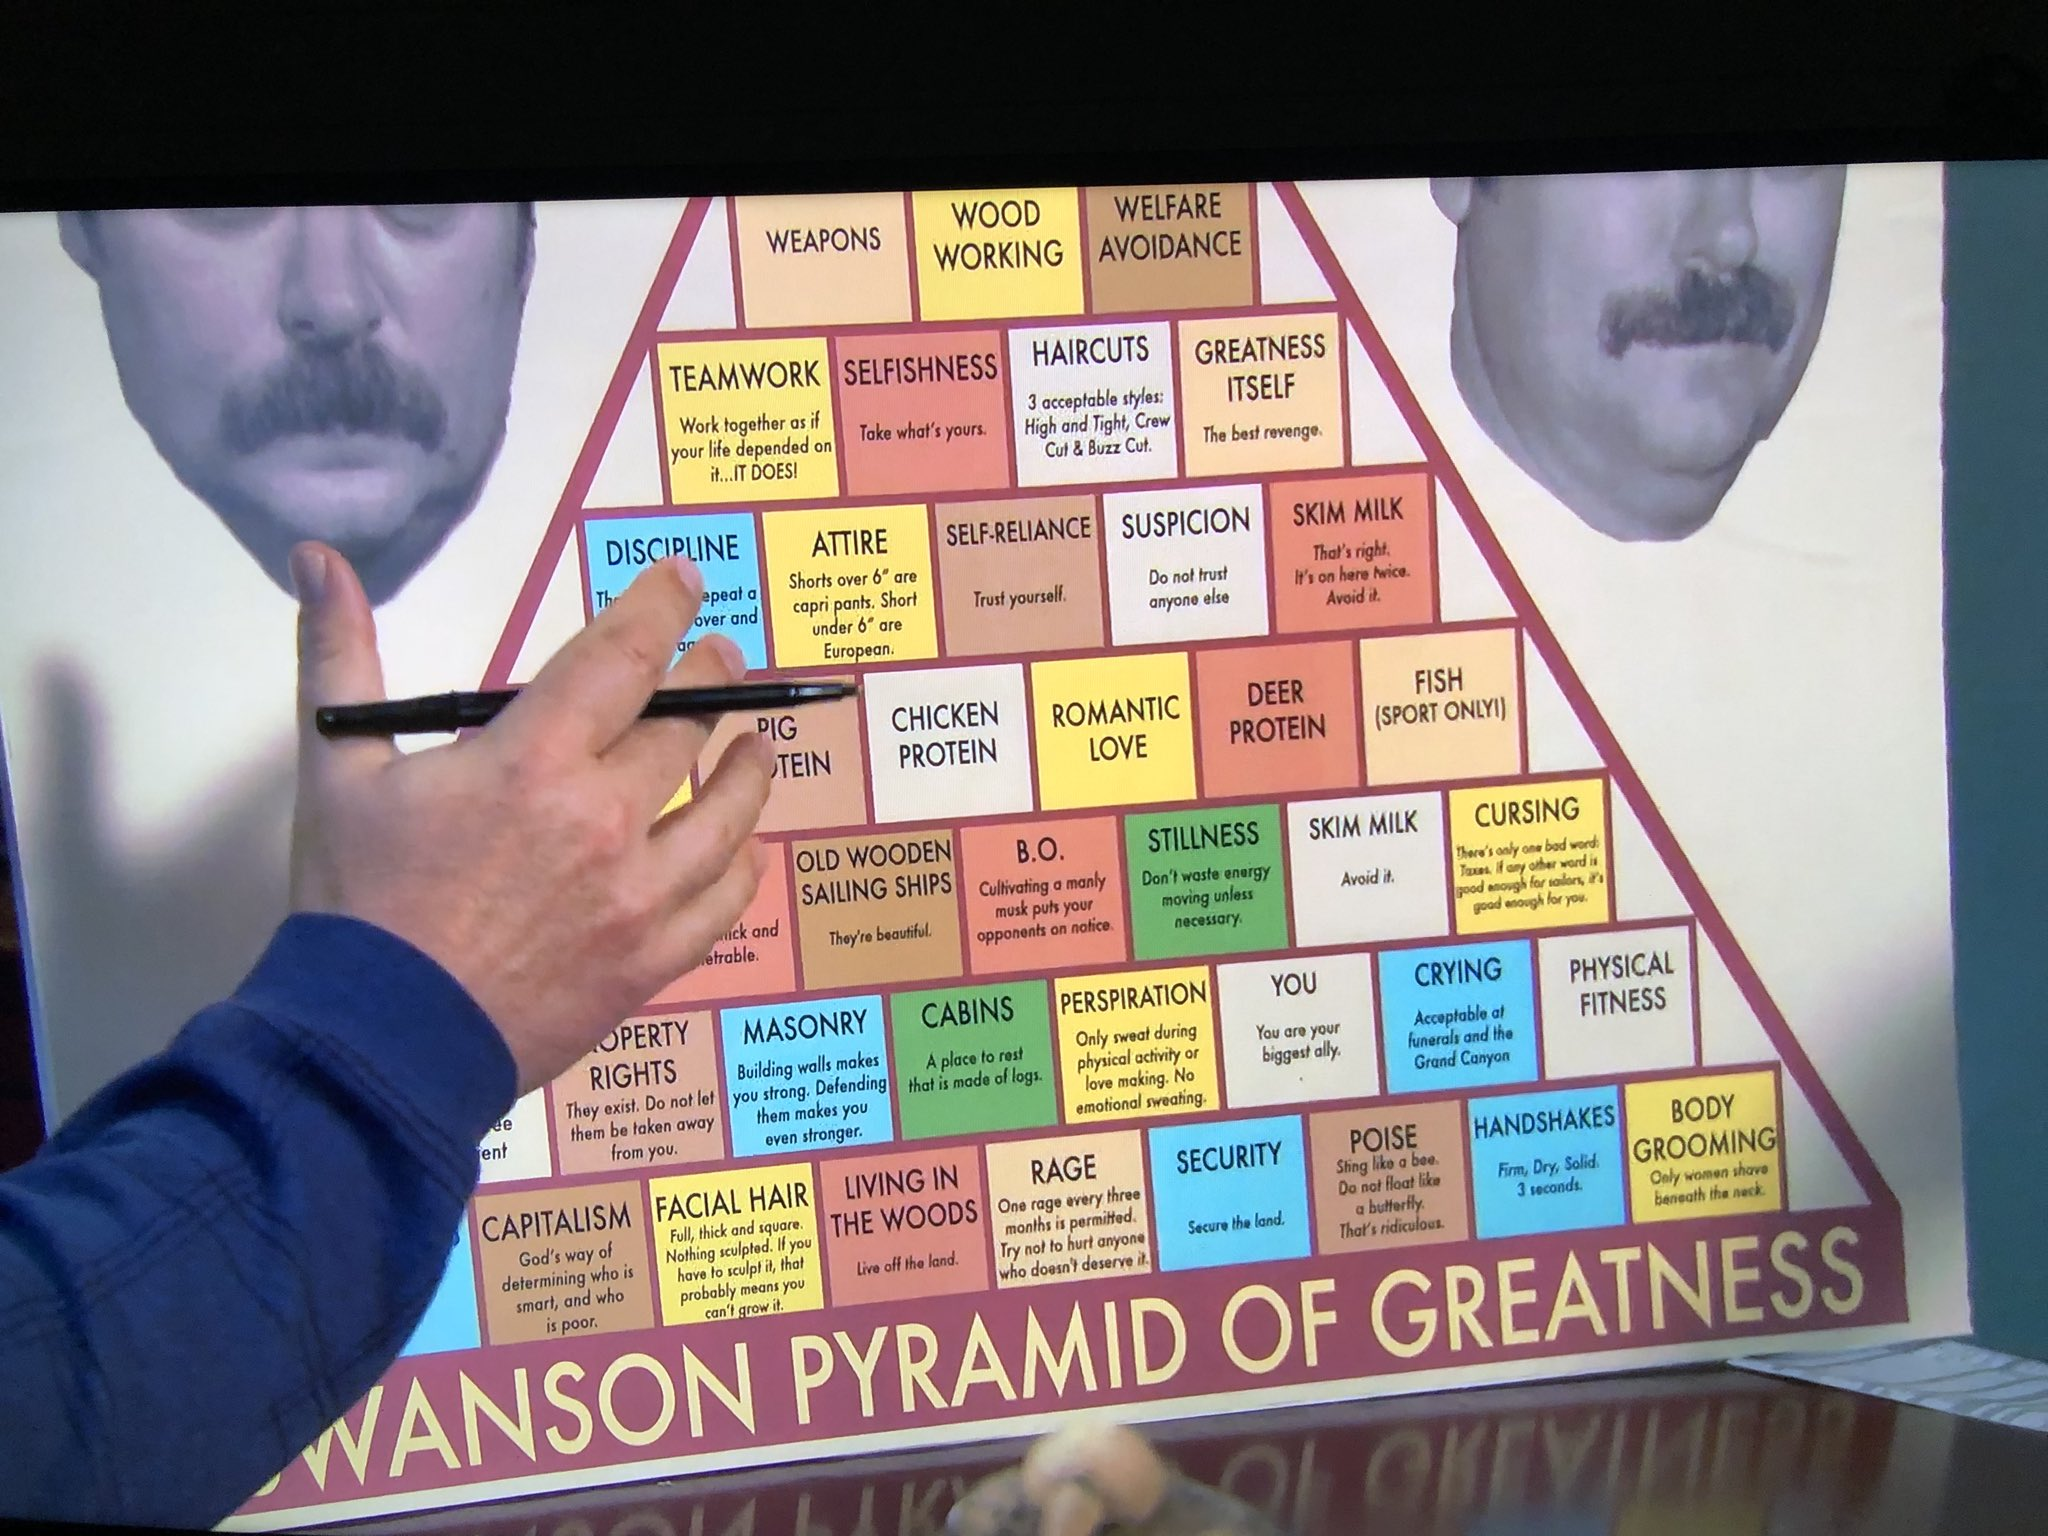 J R On Twitter Name Something Better Than The Swanson Pyramid